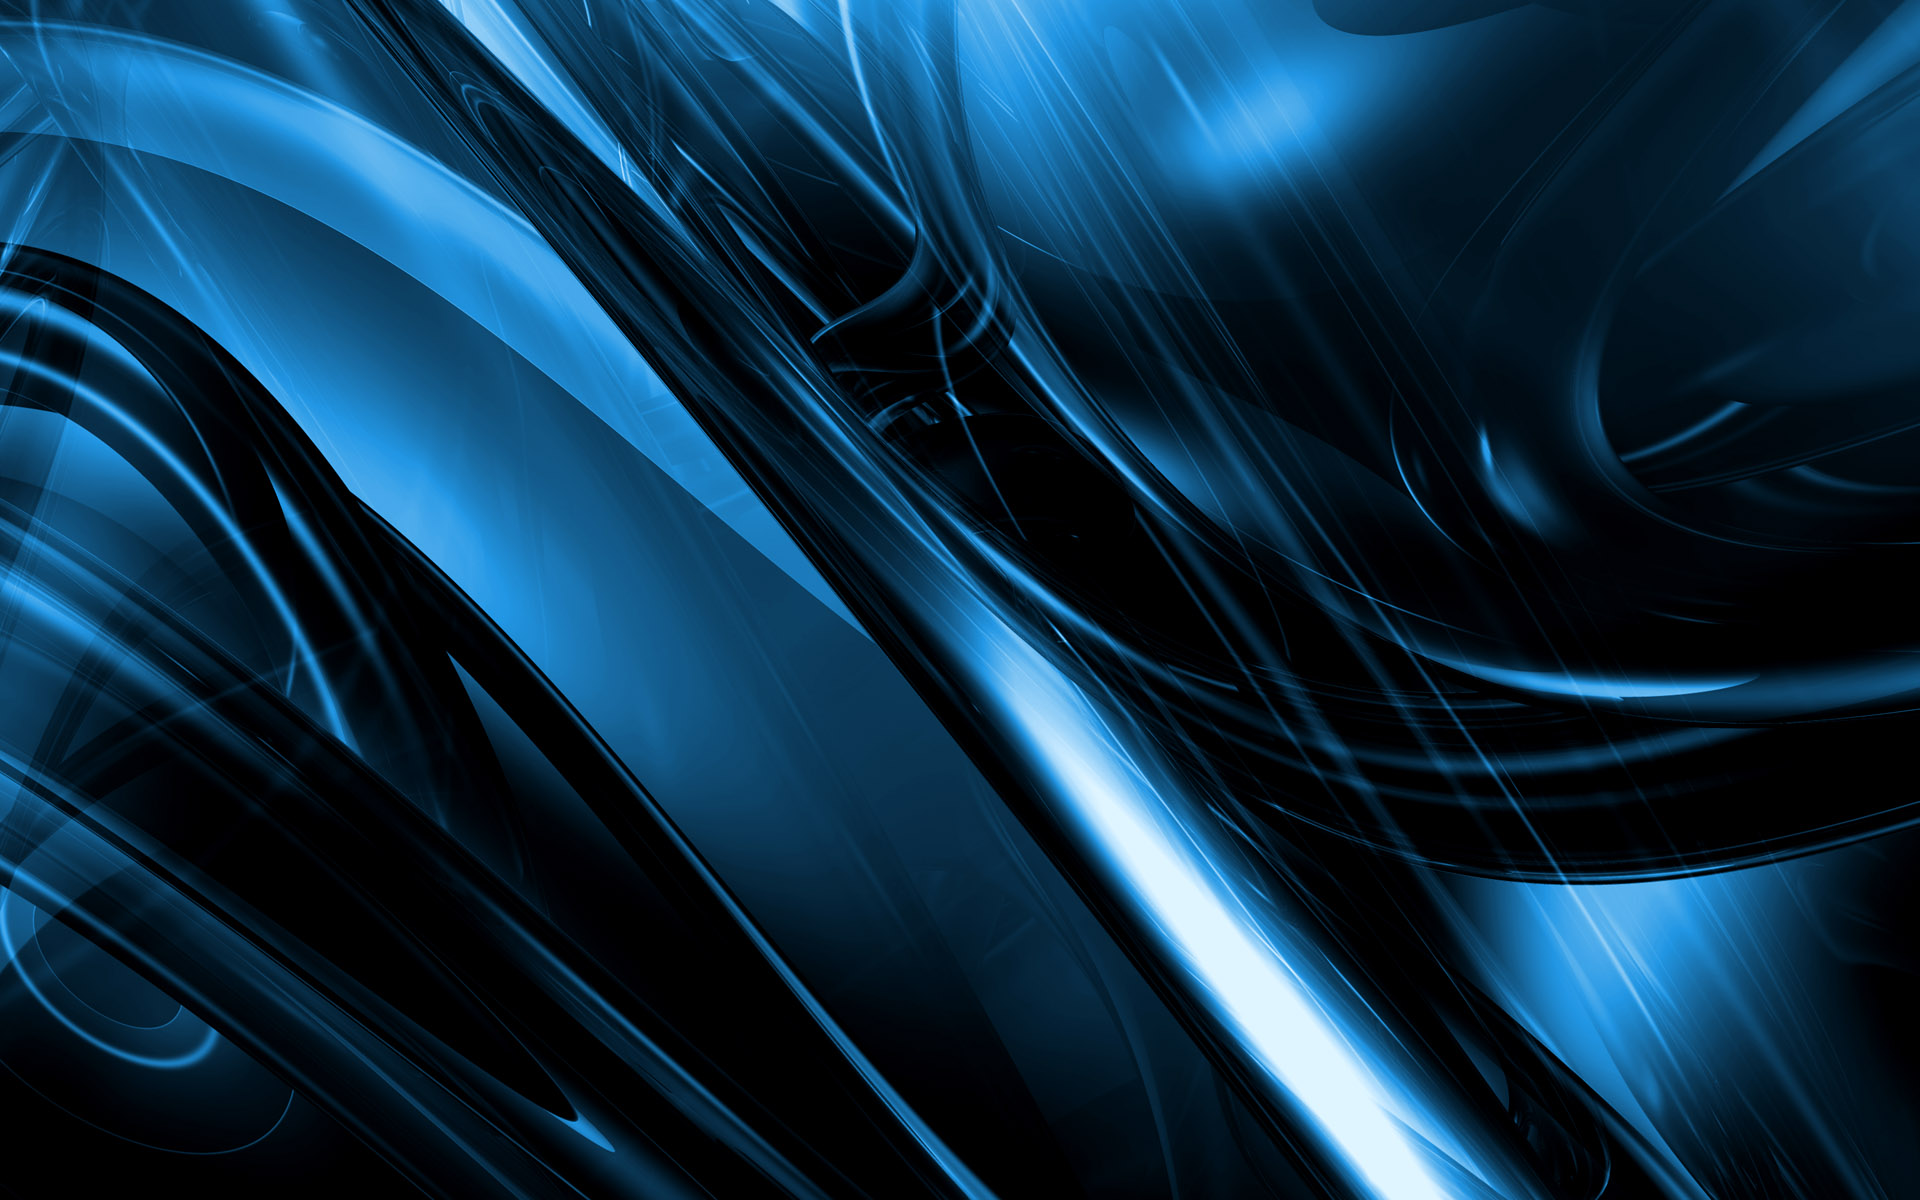 Free abstract wallpapers and screensavers wallpapersafari for Sfondi 3d gratis